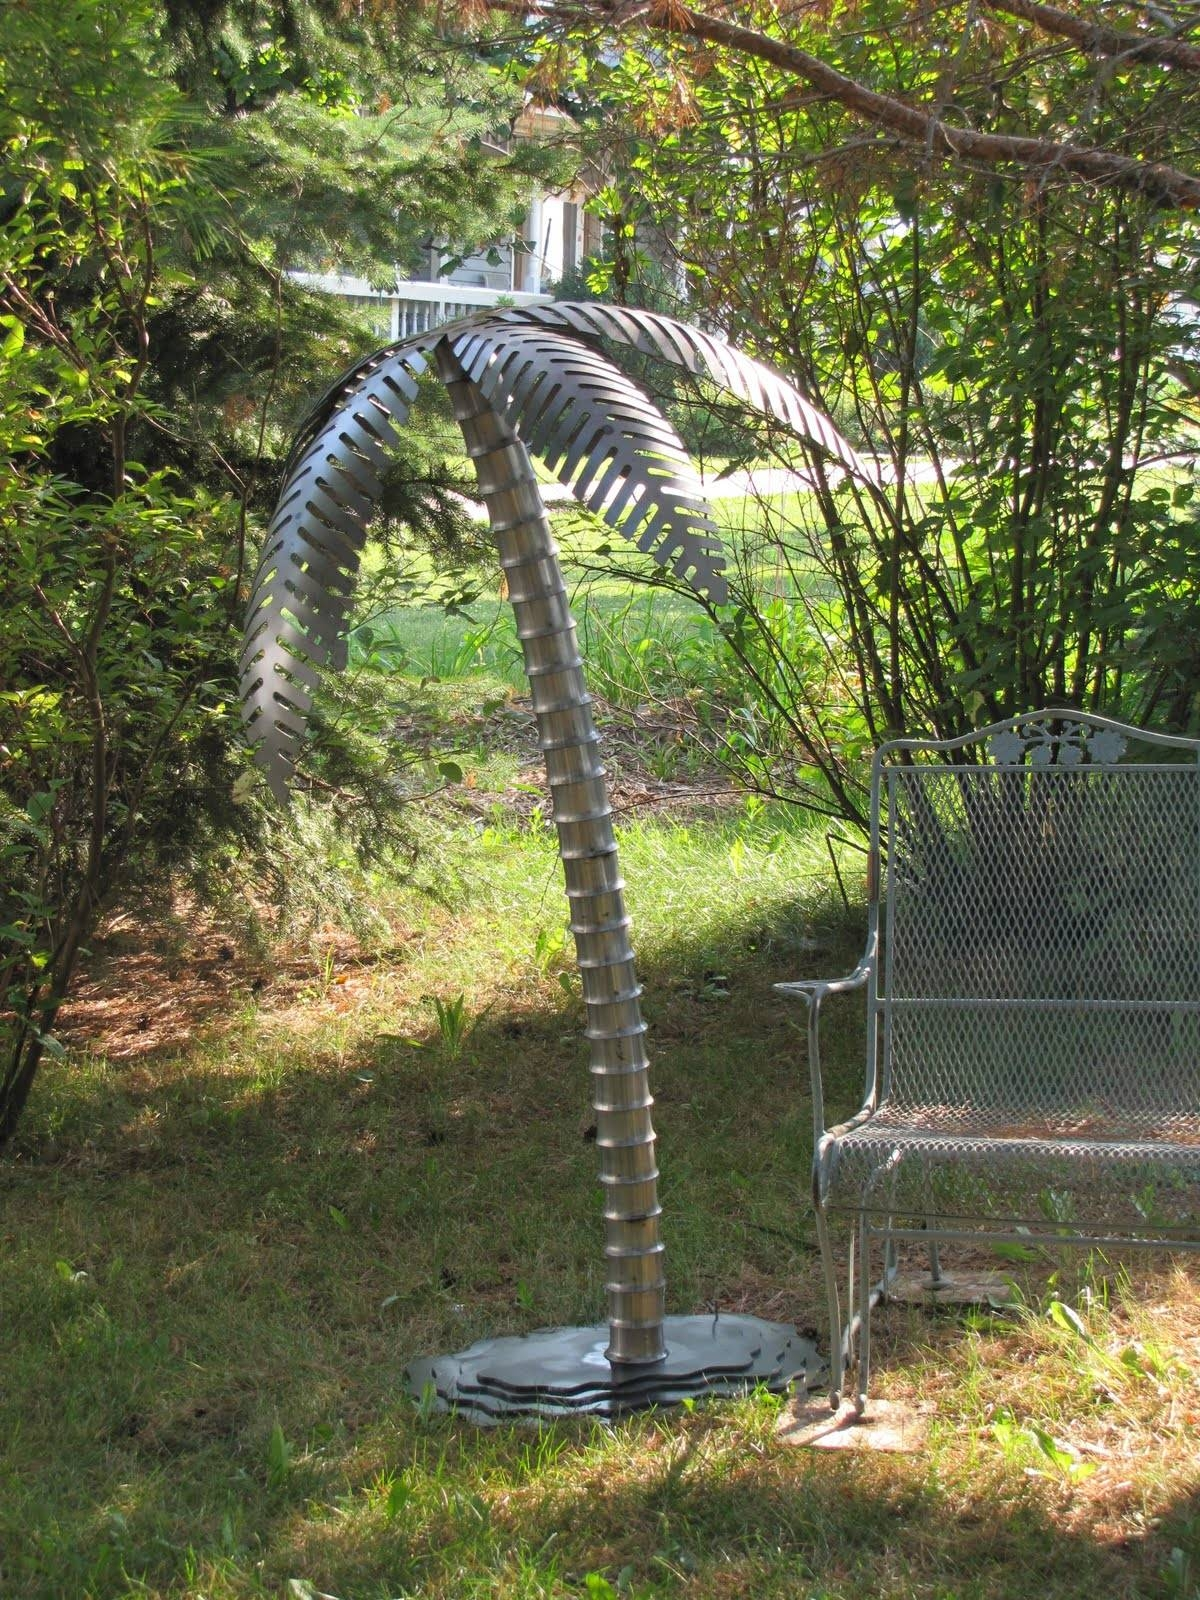 5 Ft Tall Steel Palm Tree | Metal Innovations With Most Up To Date Palm Tree Metal Art (View 10 of 25)